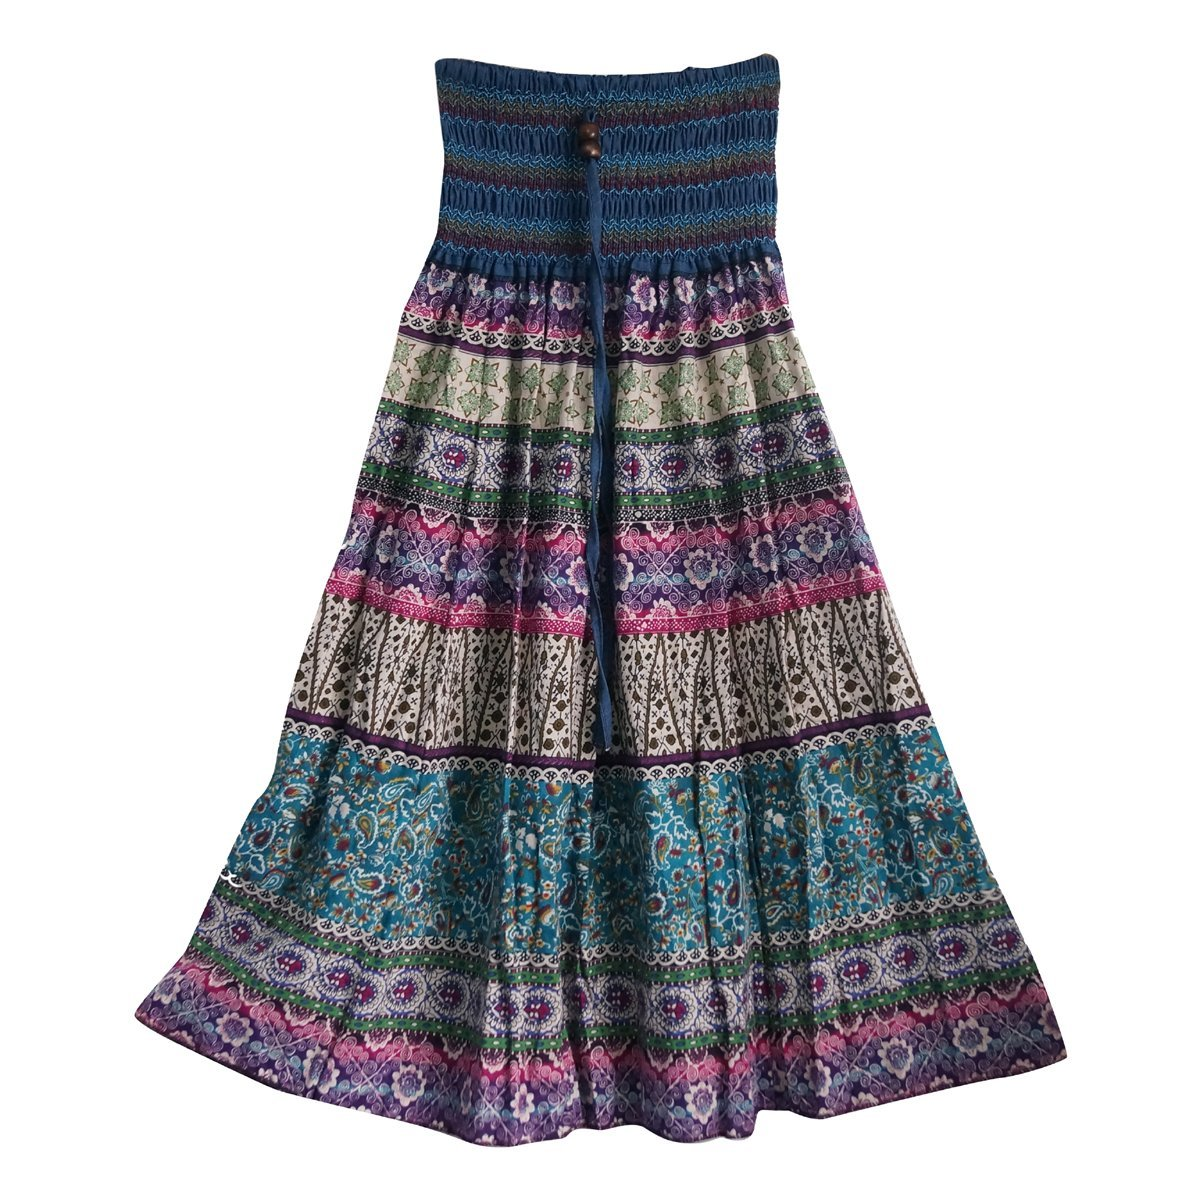 Skirt Shopping Guide We Are Number One Where To Buy